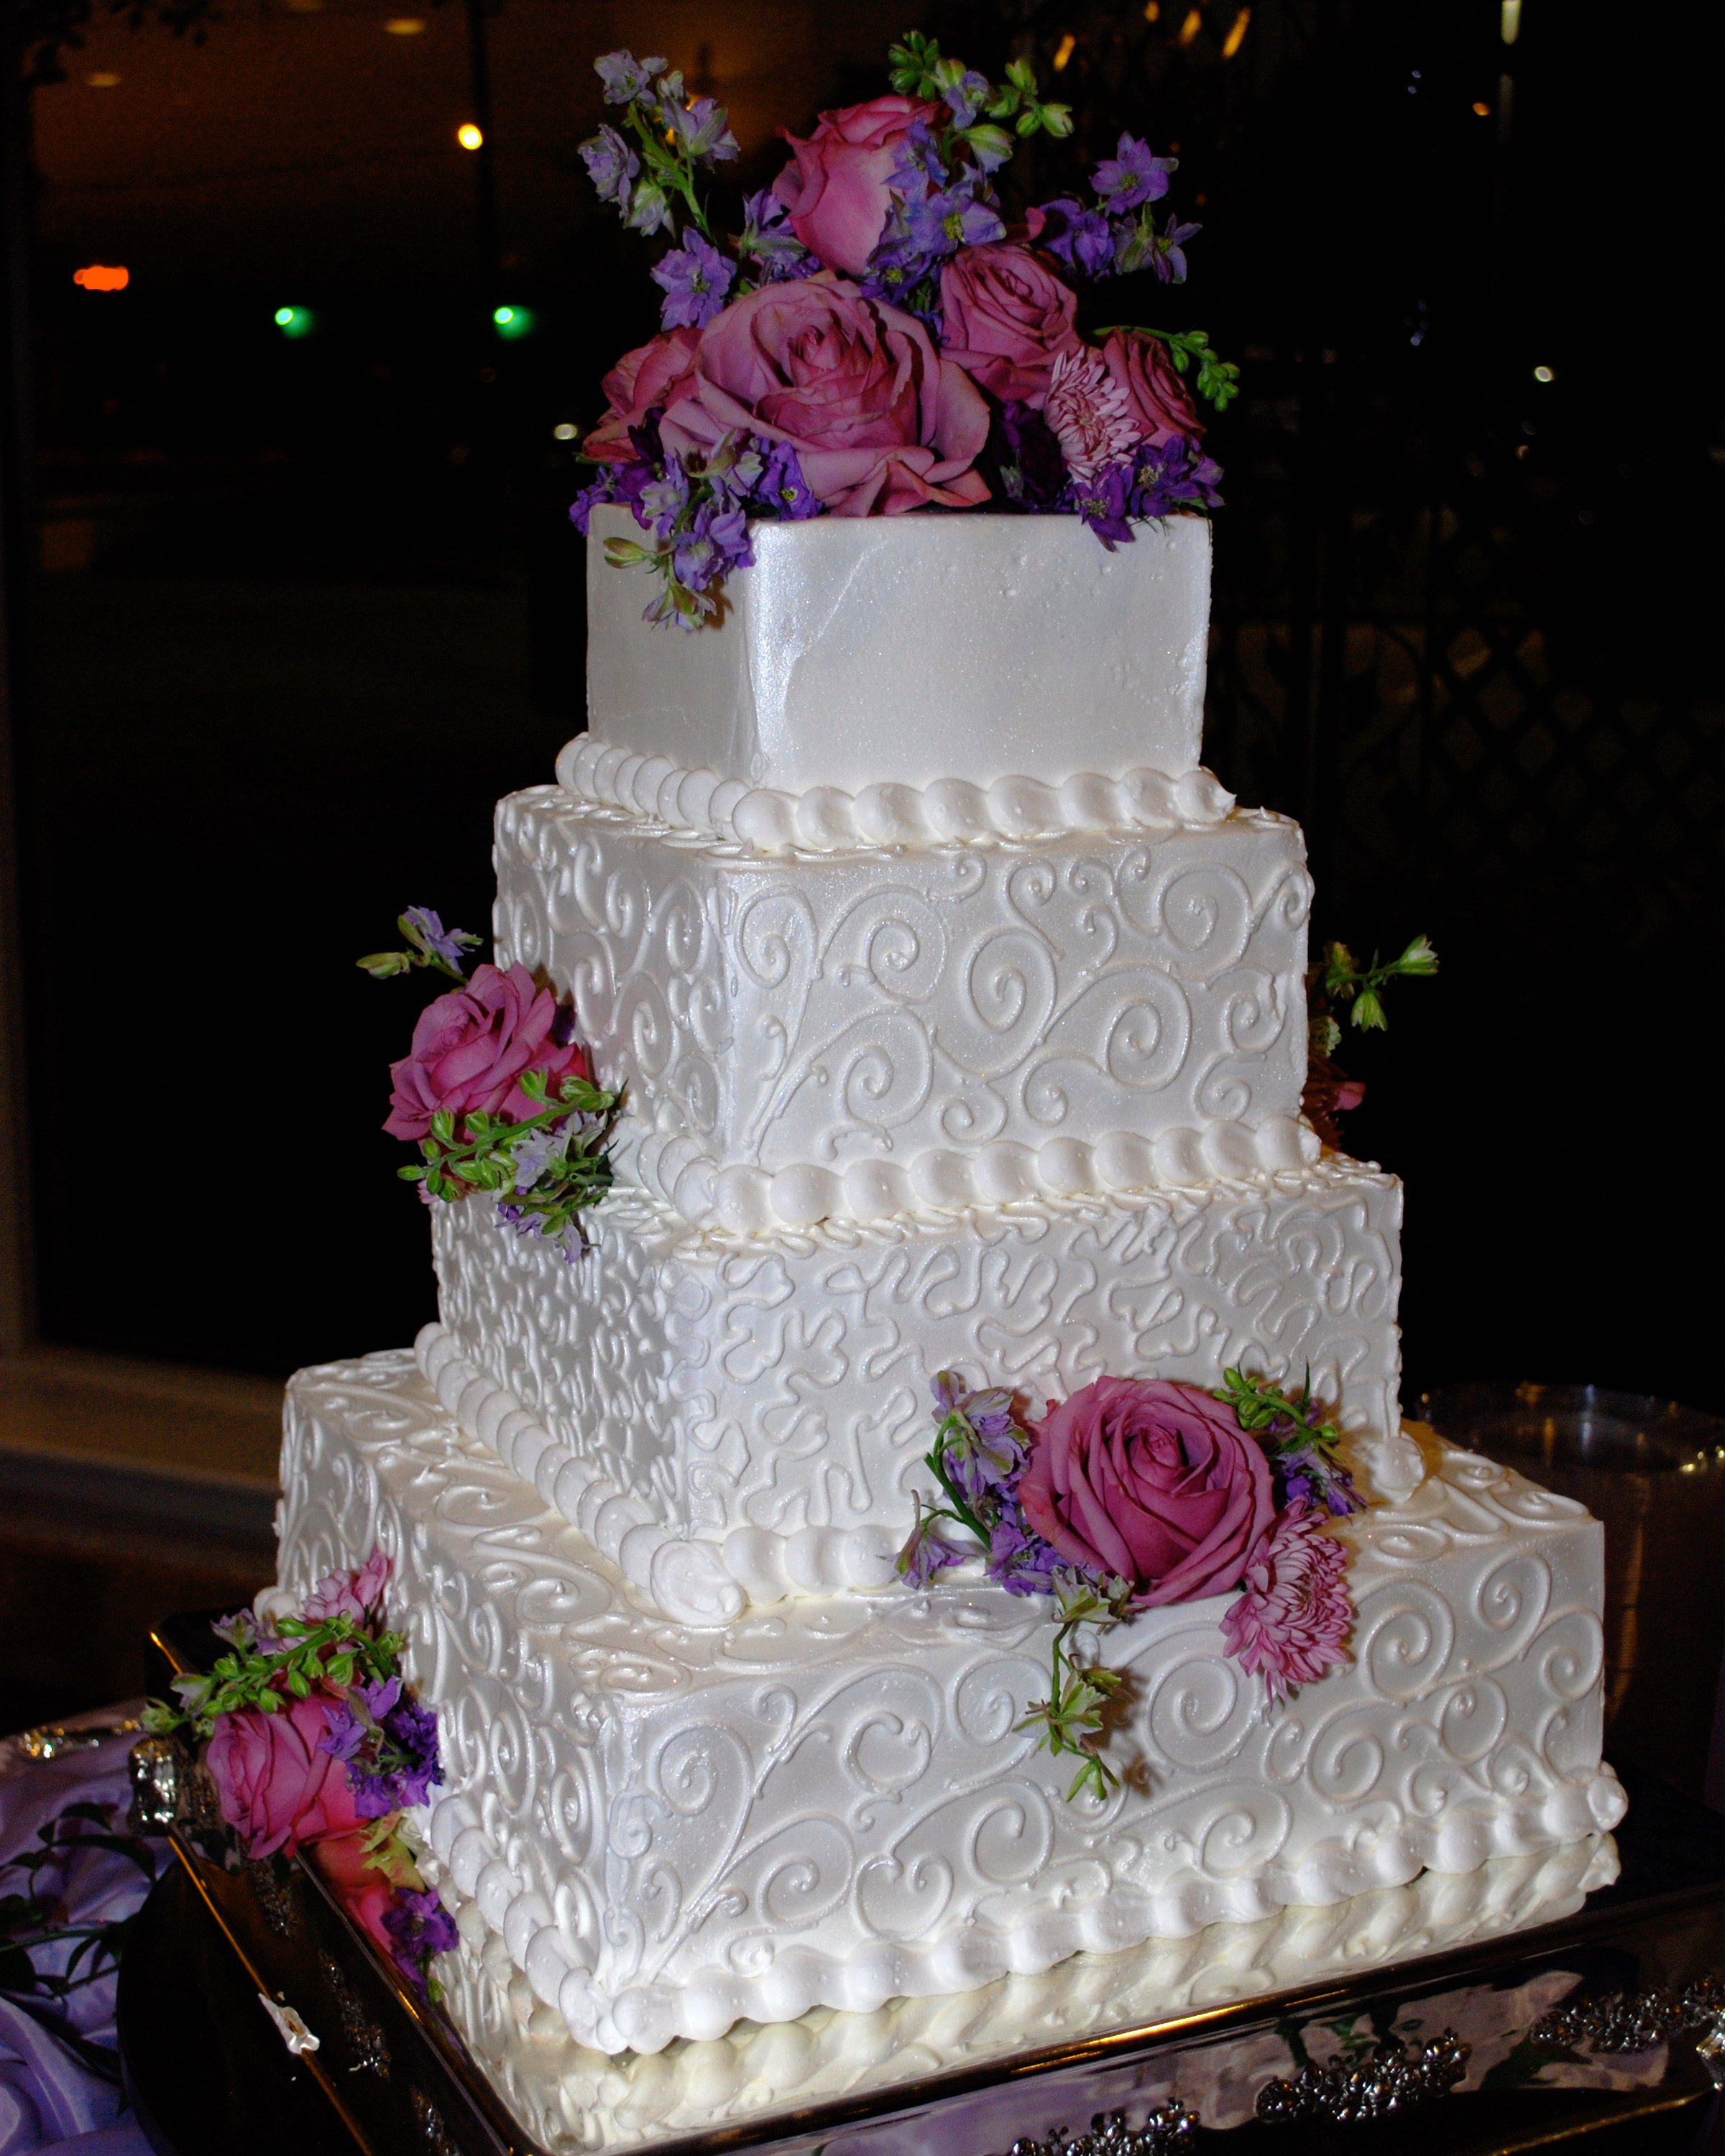 Reception, Flowers & Decor, Cakes, white, purple, cake, Shimmer, White grace photography